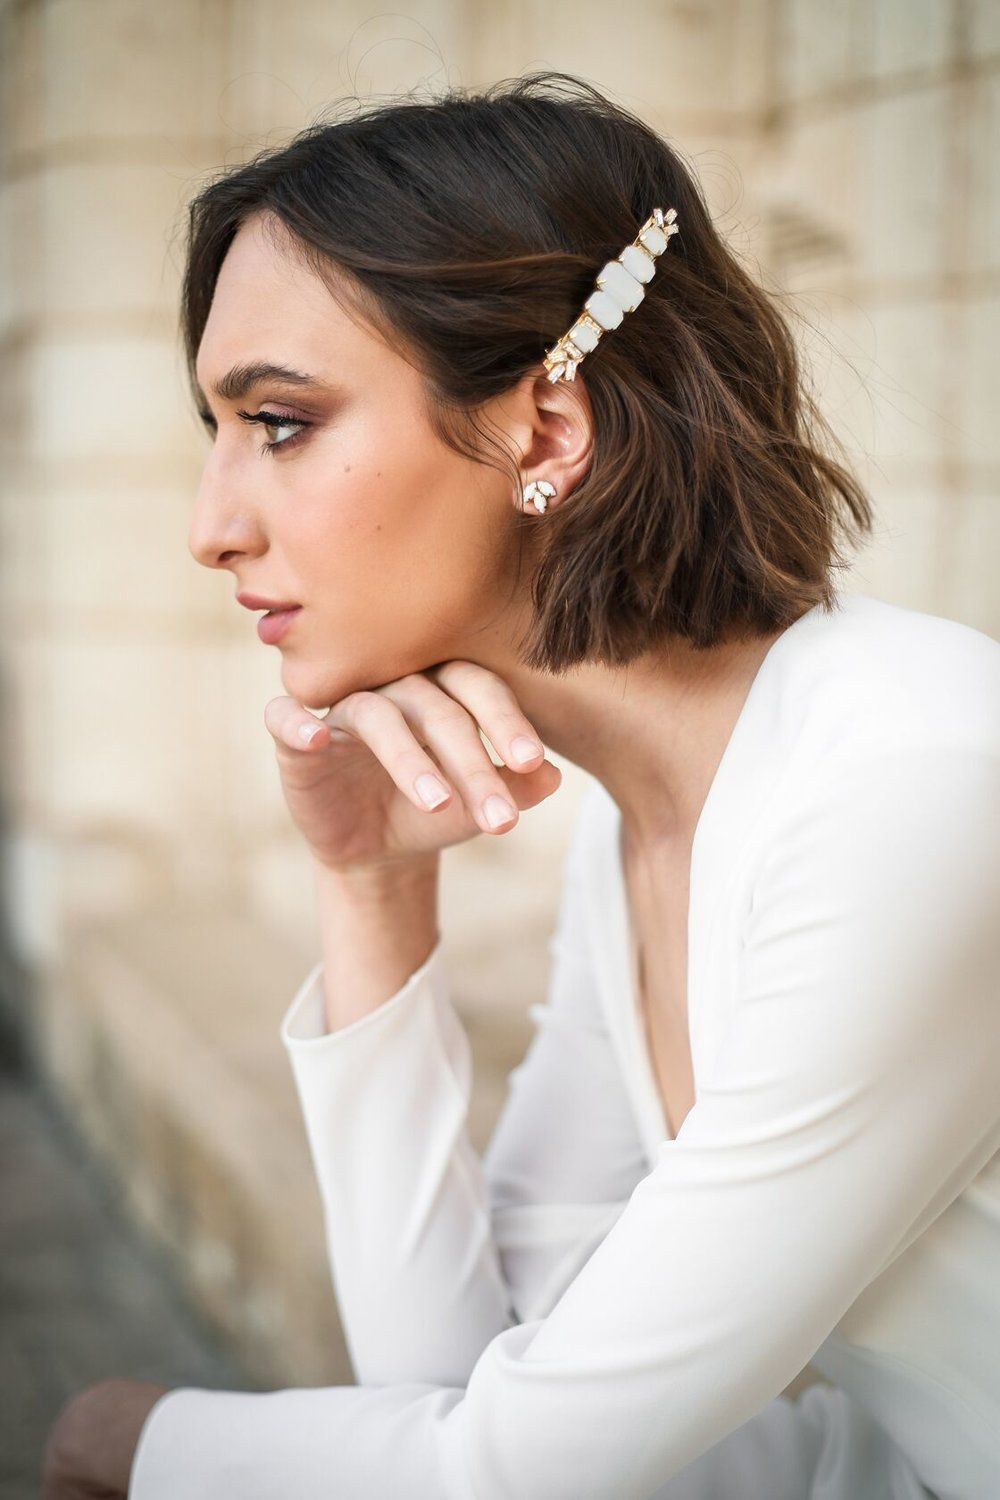 Bows, Barrettes, Bars, Oh My! All the Popular Hair Trends for Fall Bridal Hairstyles | Green Wedding Shoes